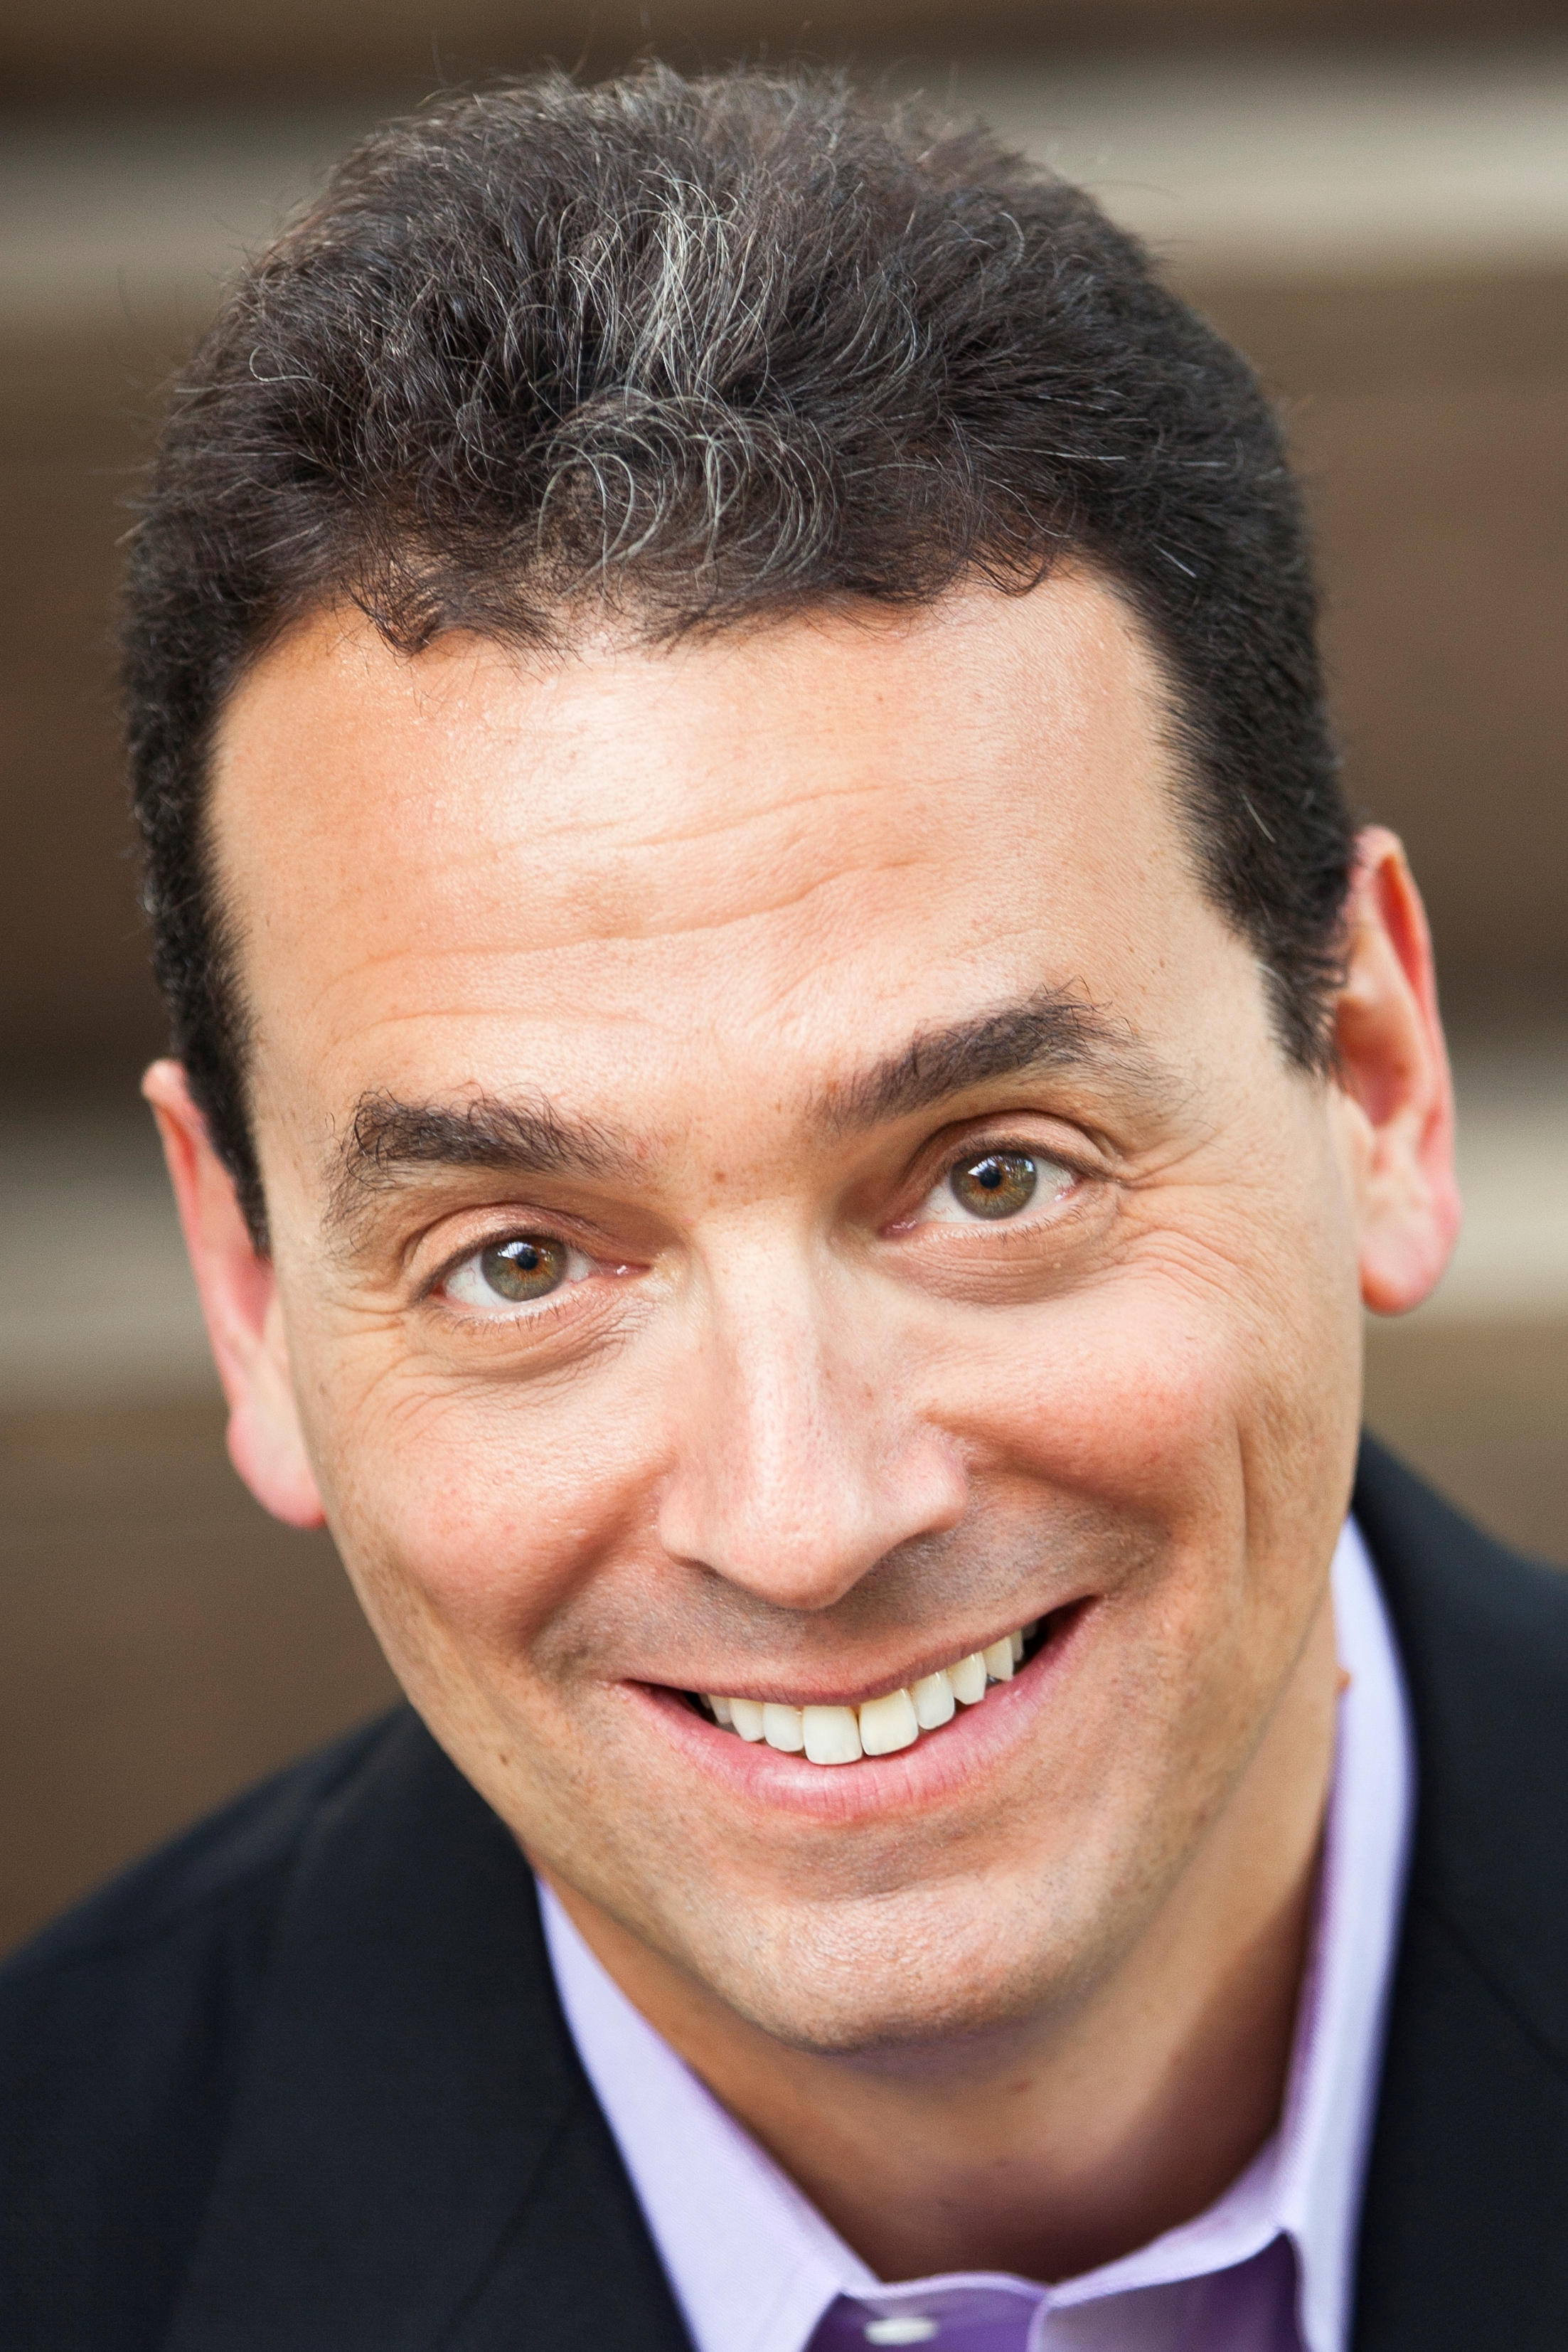 Daniel Pink keynote to focus on organizations, innovation